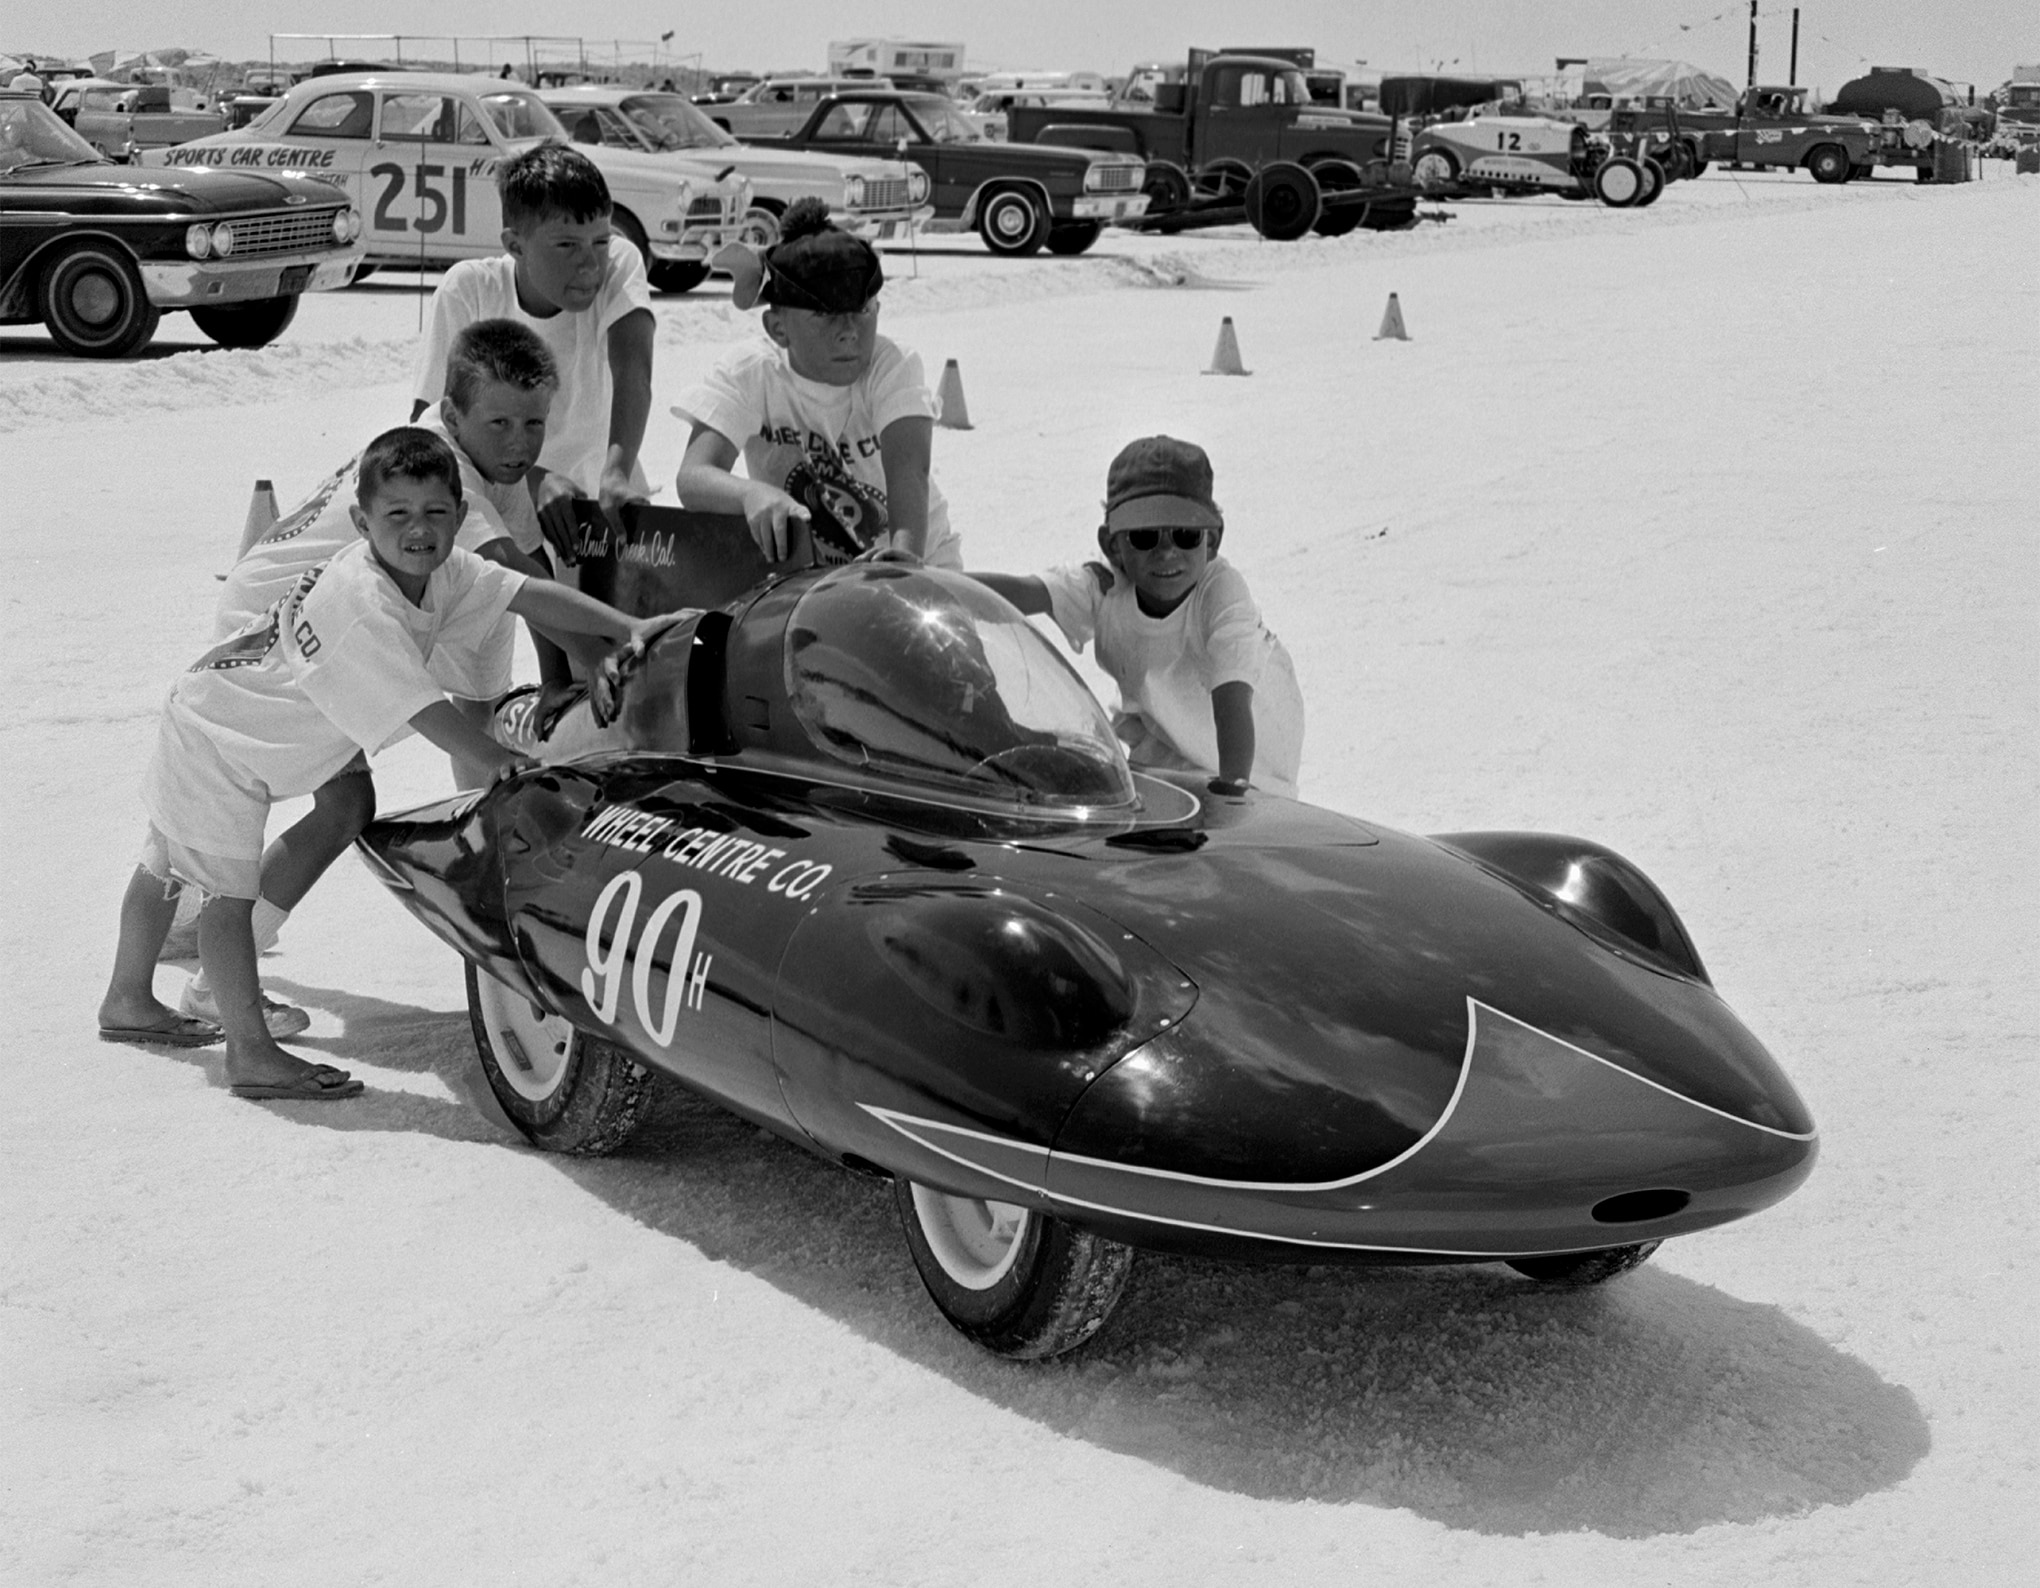 His youthful pit crew pushed Dick Beith off to multiple attempts at the H/Streamliner record of 144.436 mph, but the swoopy minicar's 44ci Mercury outboard engine topped out at 141.50.